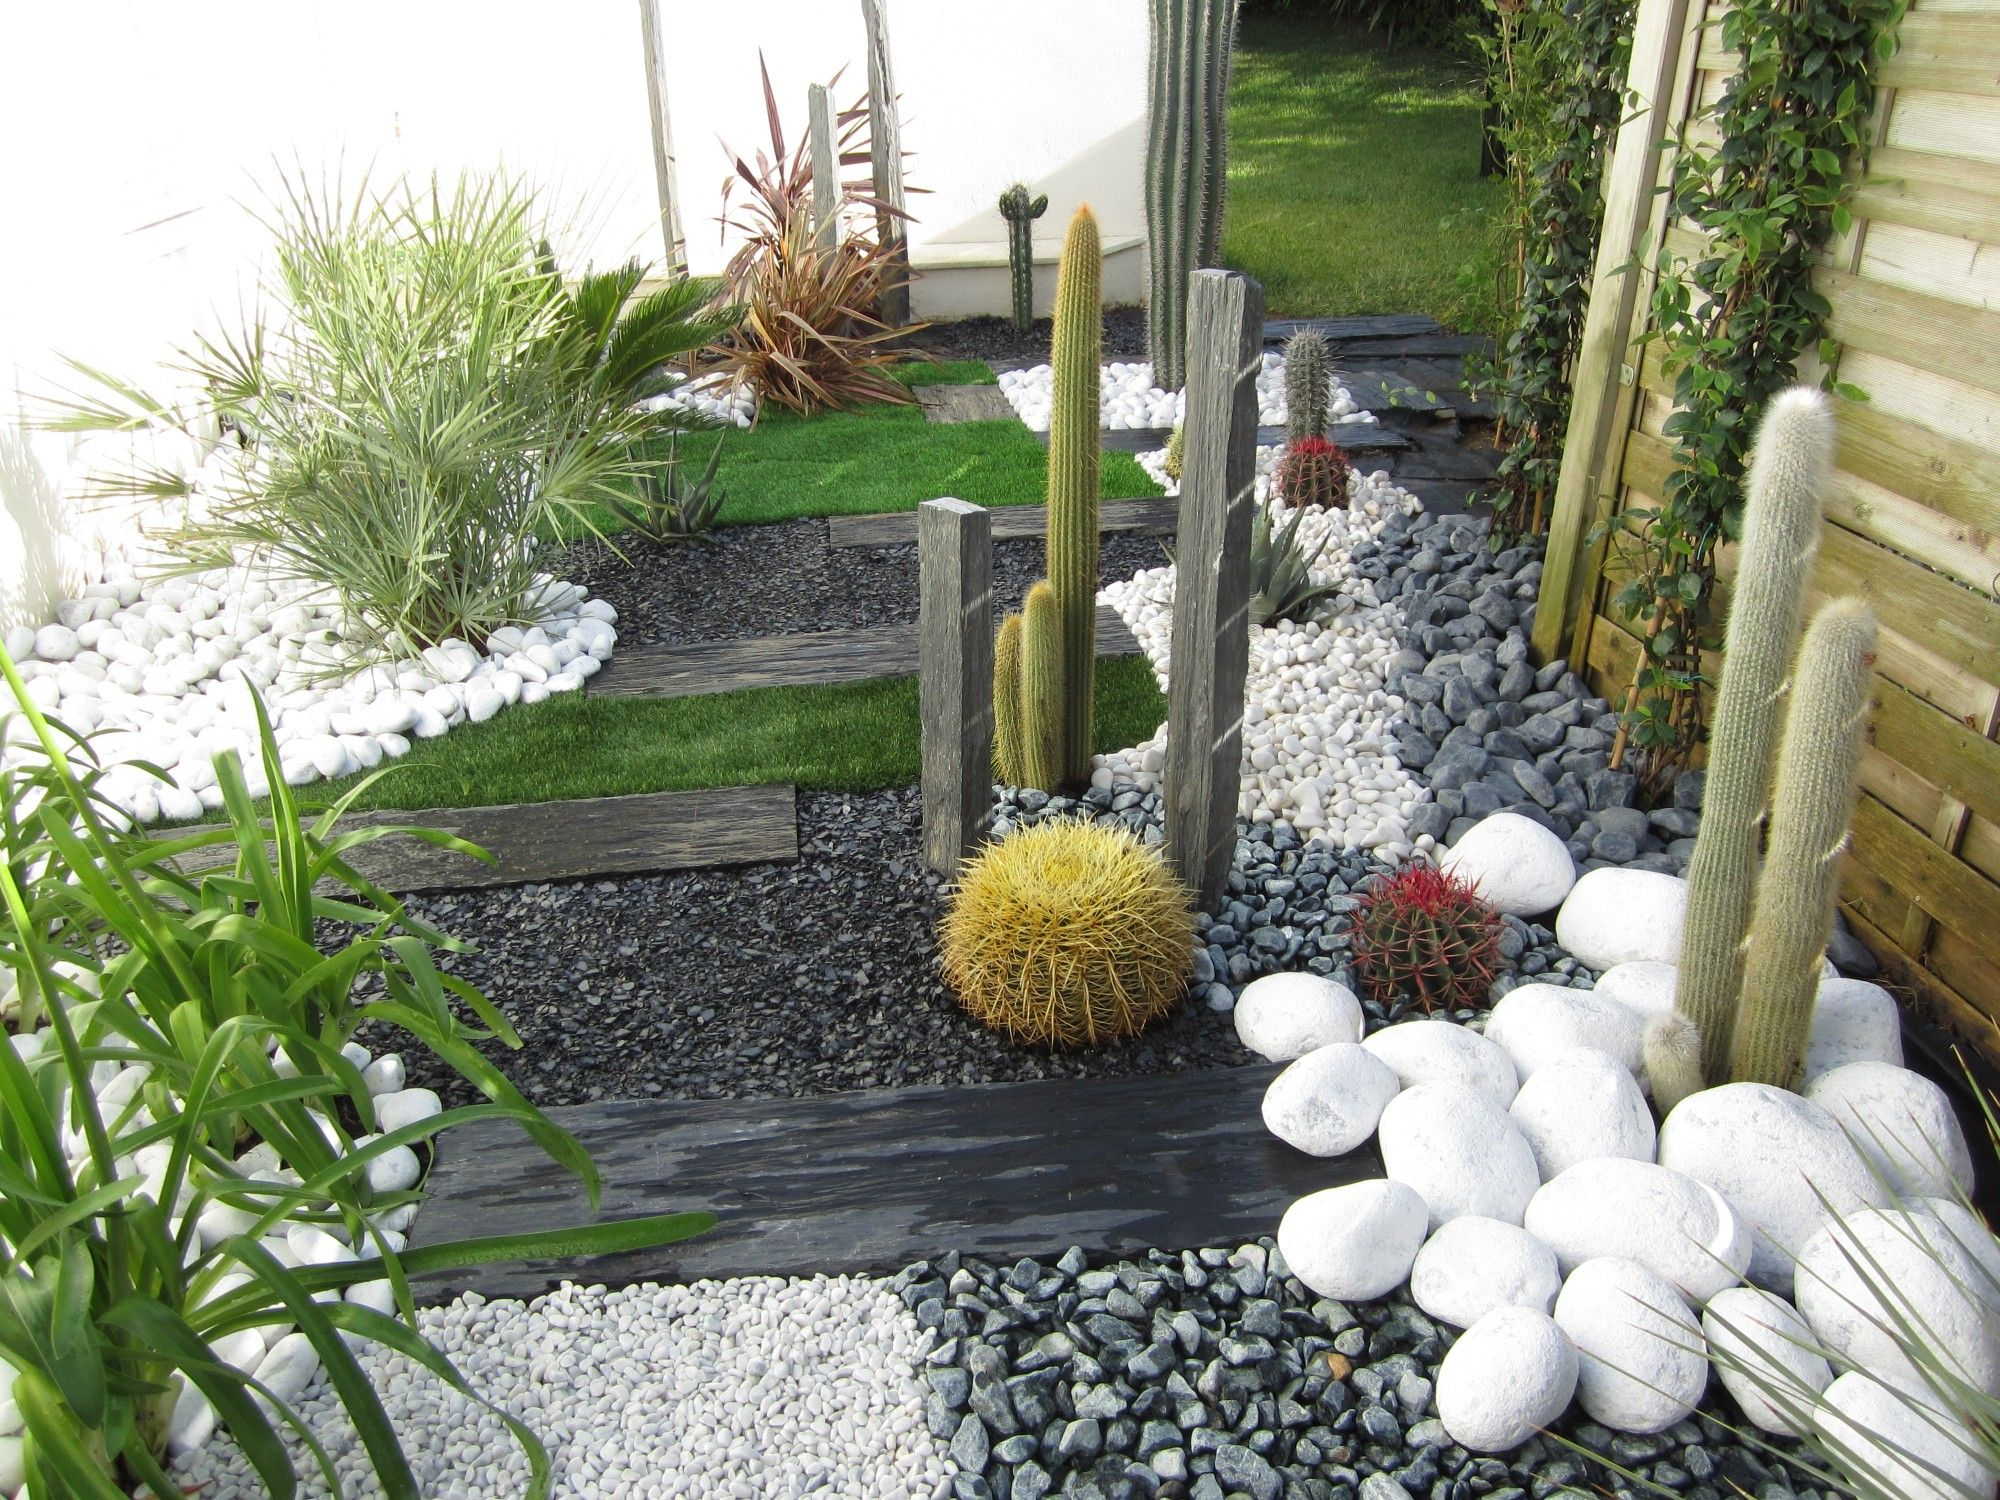 Jardin sec cactus galets polis blancs gazon synth tique for Creation jardin japonais